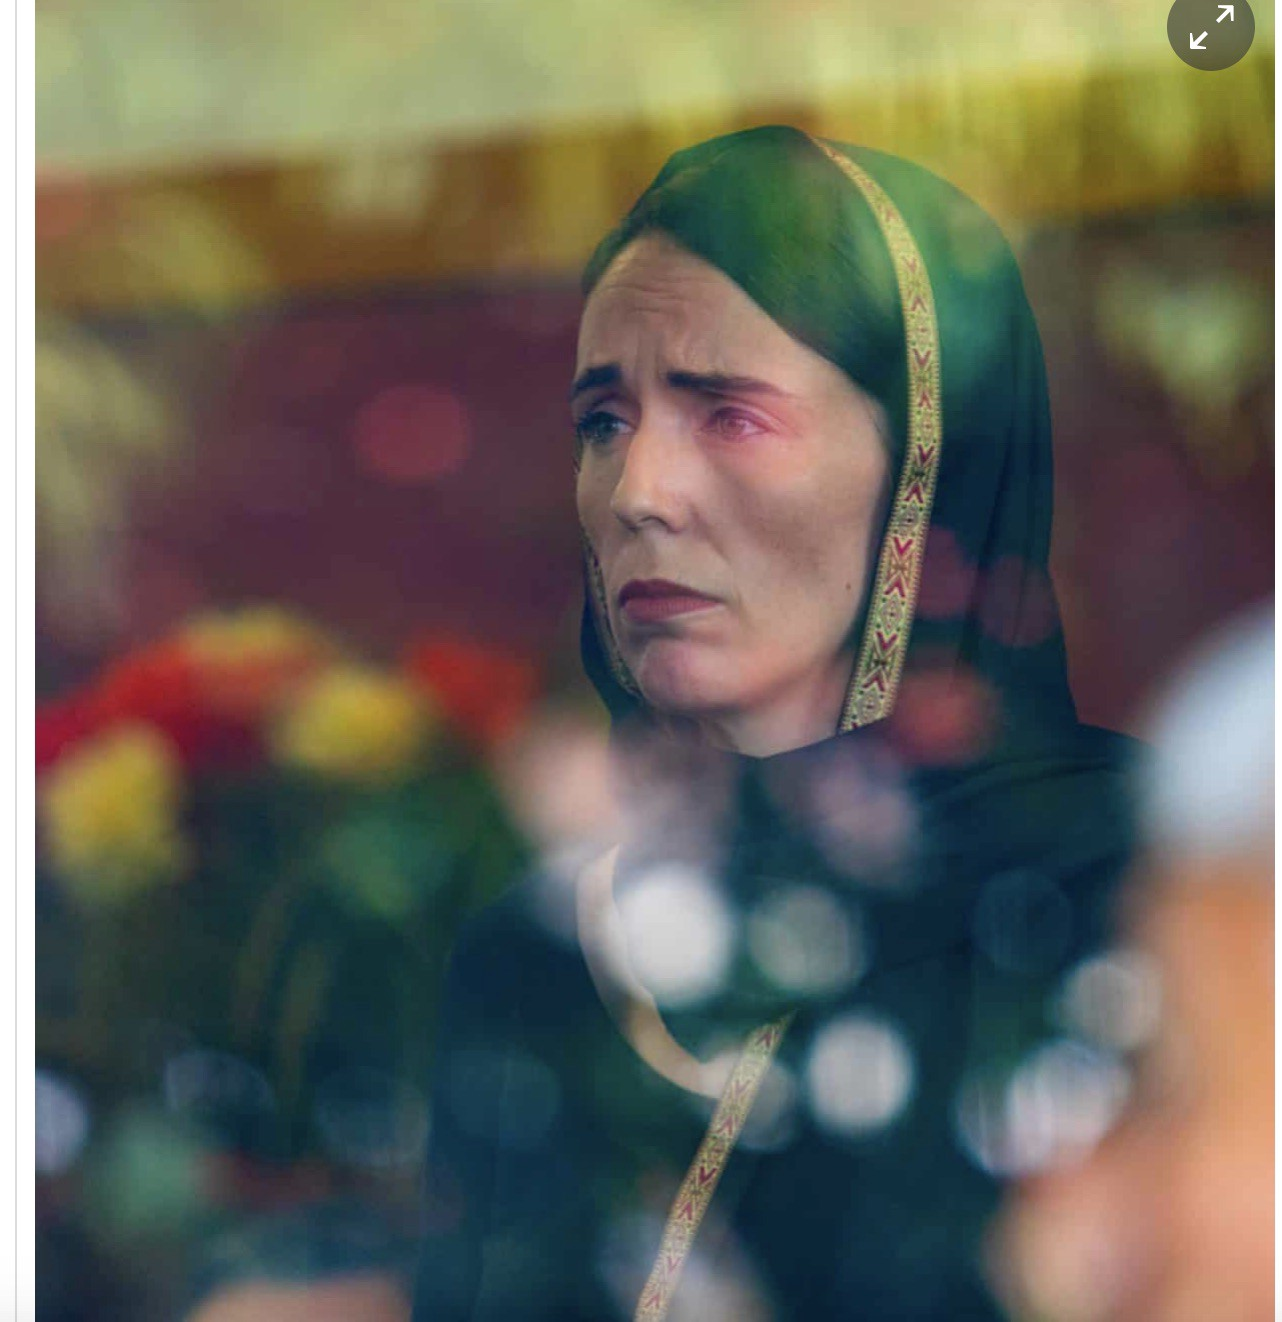 Prime Minister Jacinda Ardern, in the wake of the Christchurch massacre, photographed by Kirk Hargreaves